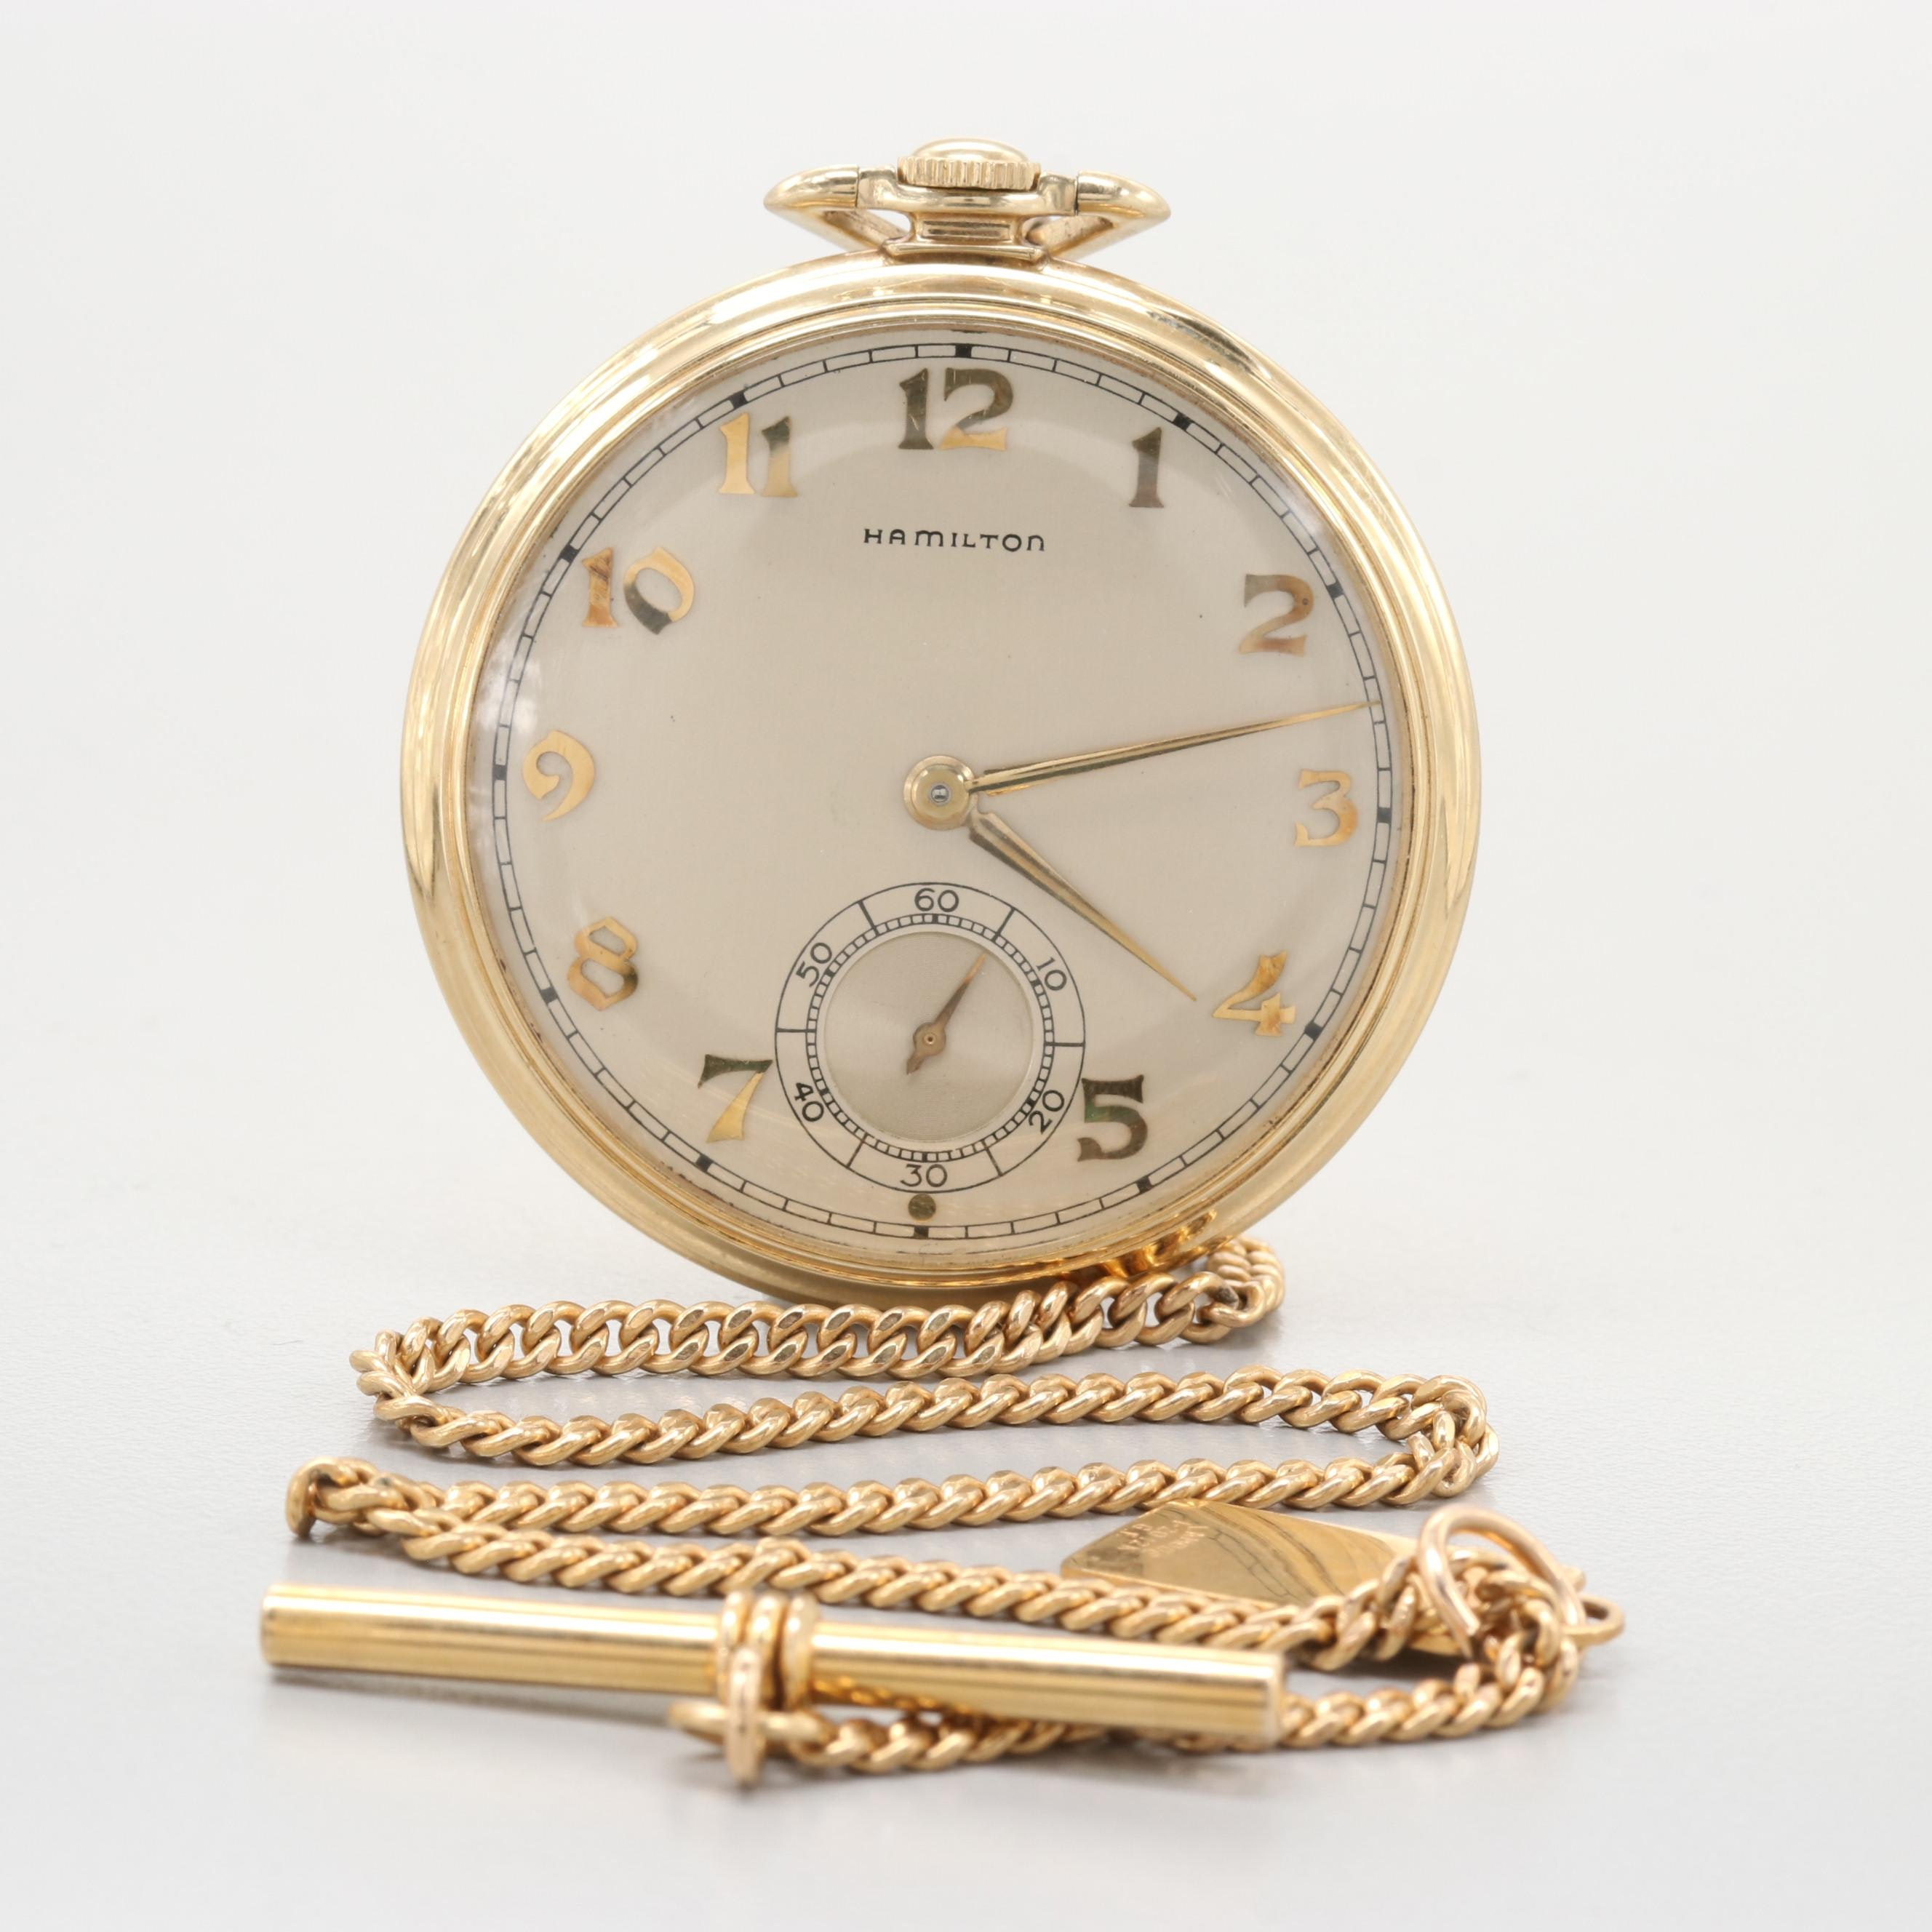 Hamilton 14K Yellow Gold Pocket Watch, 1947